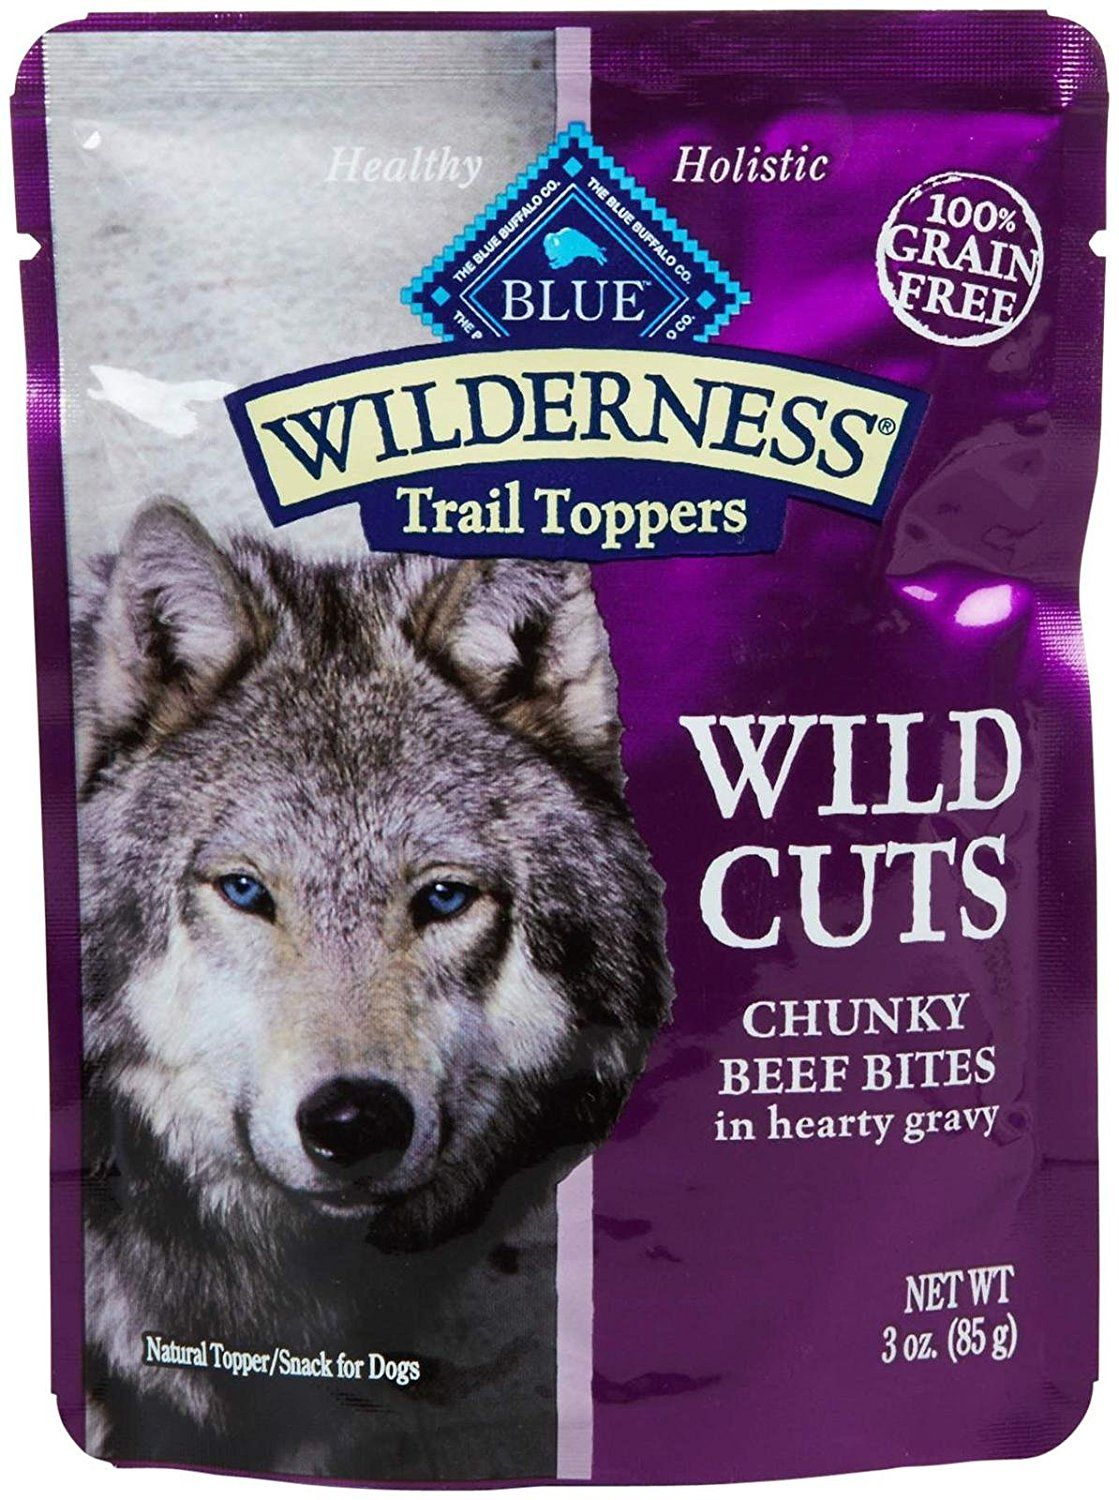 Blue buffalo wilderness trail toppers chunky beef bites